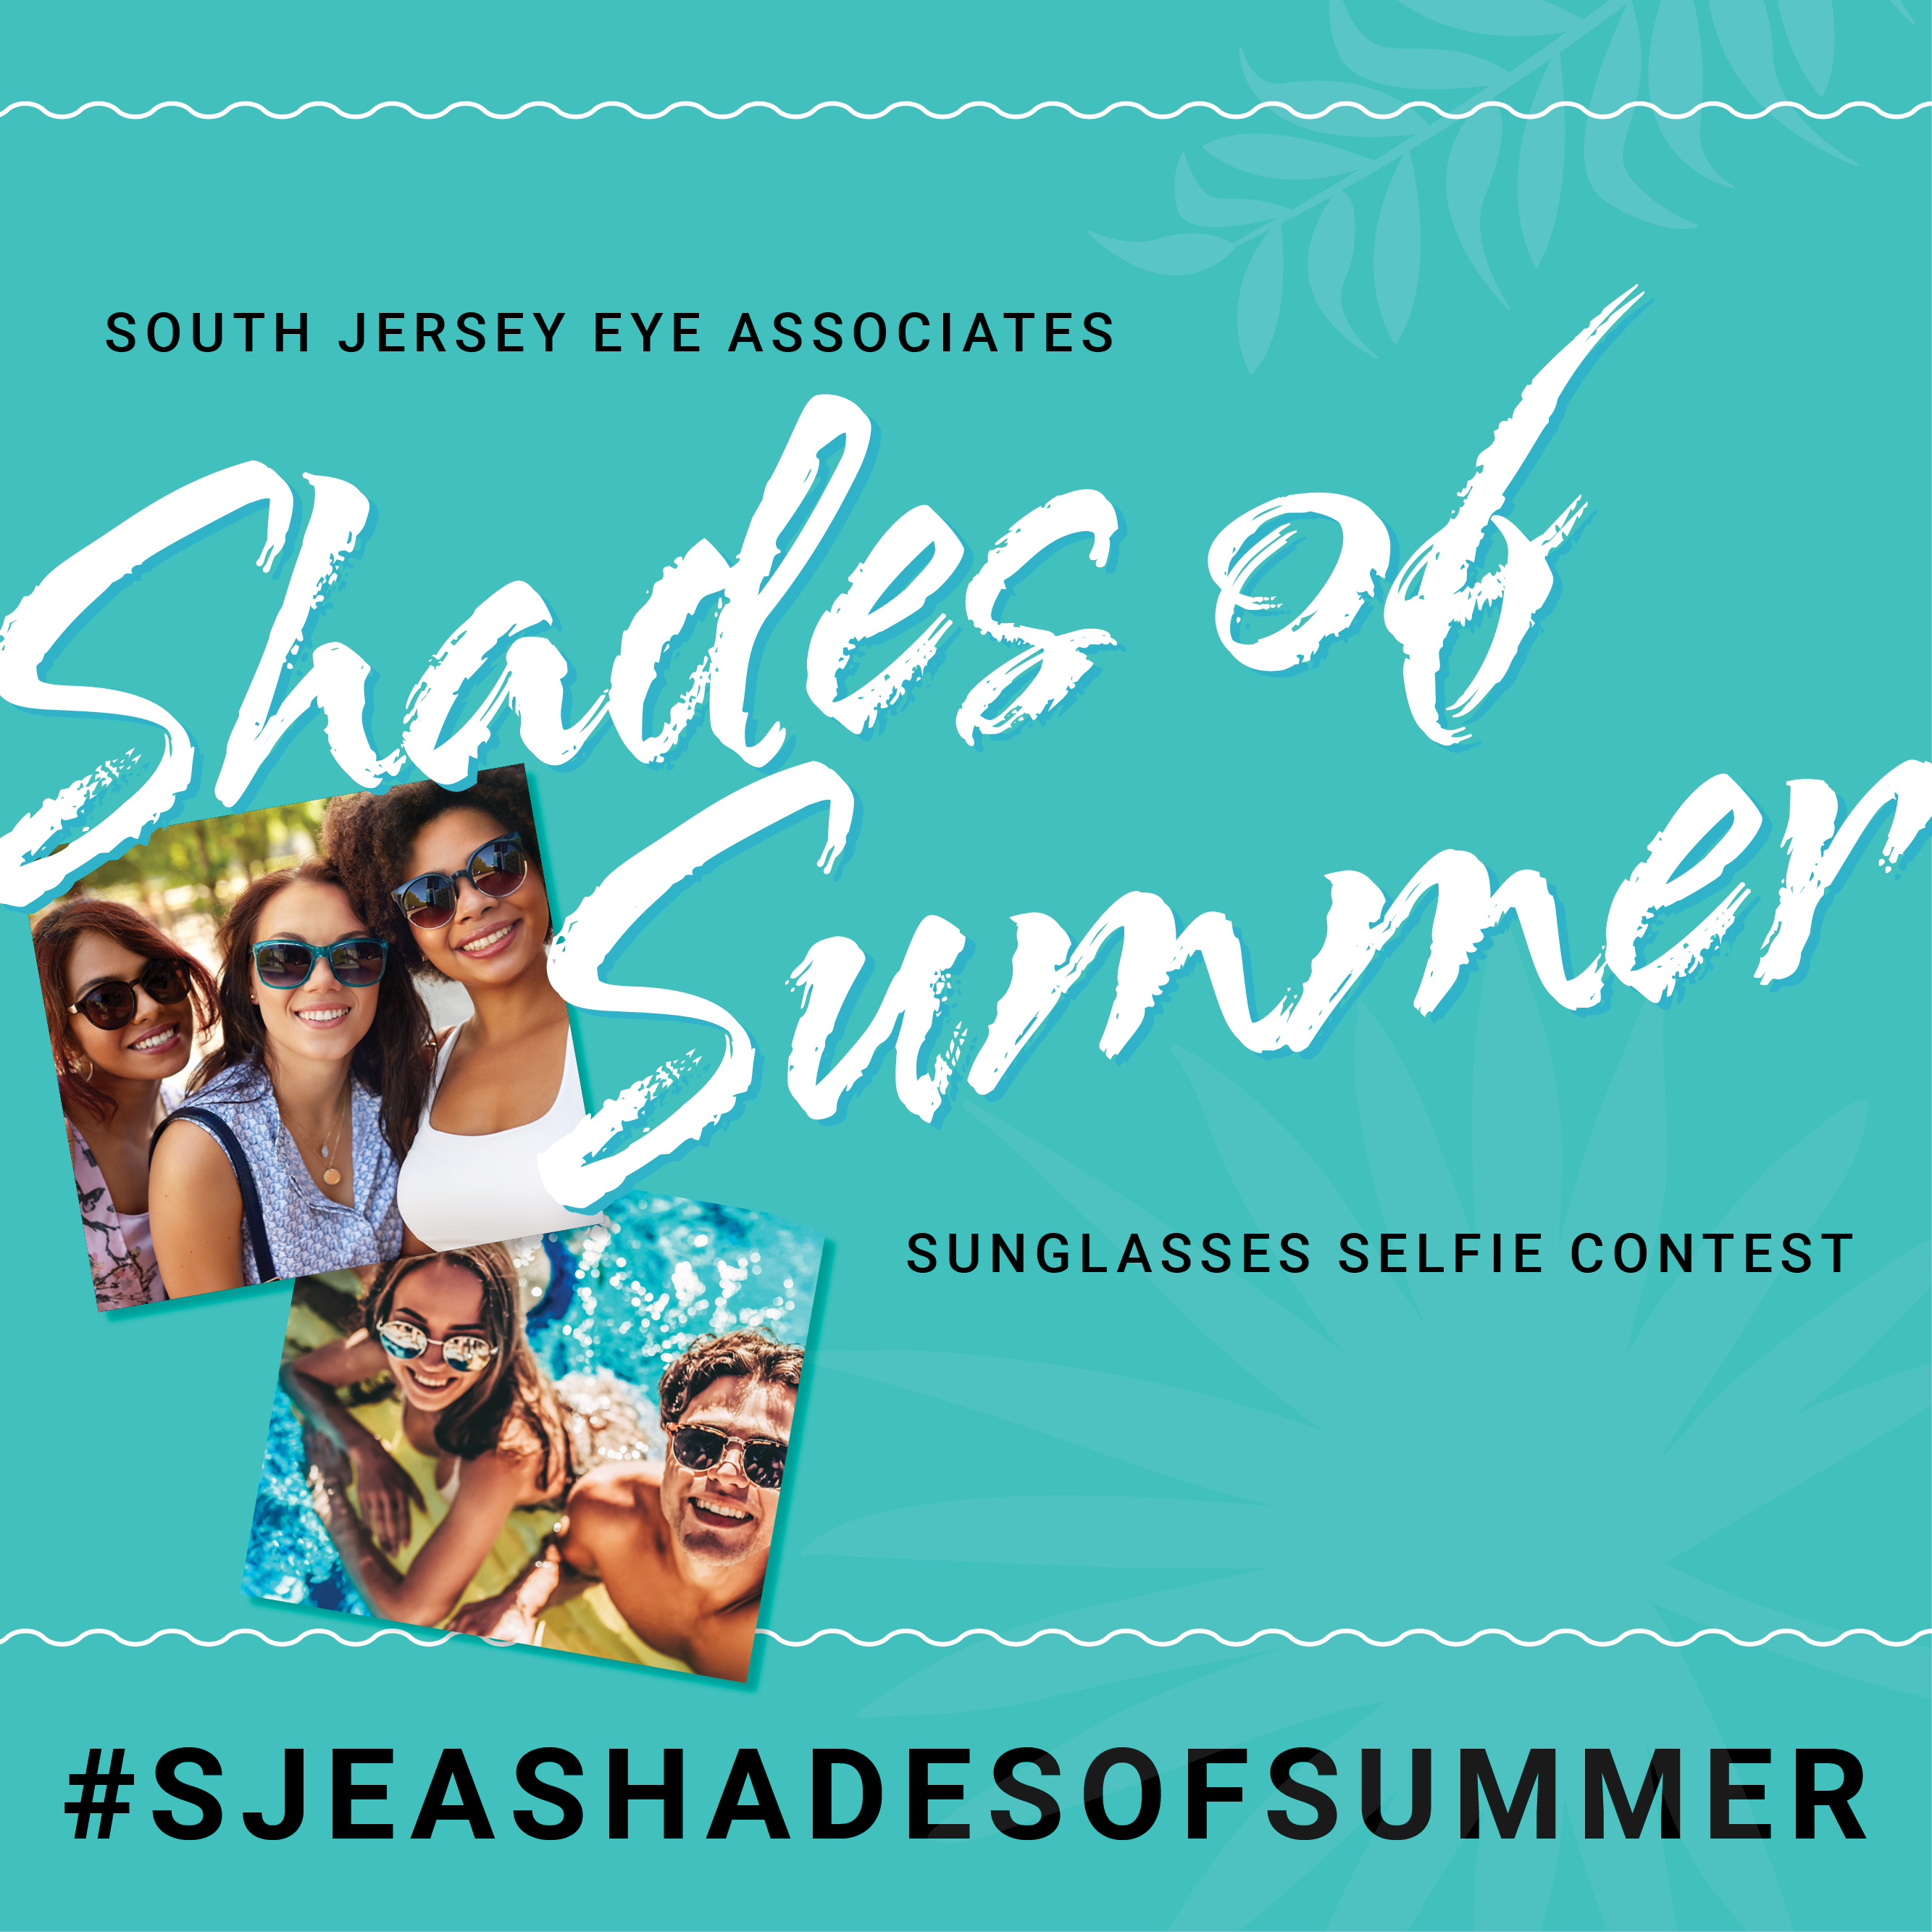 SJEA Shades of Summer Sunglasses Selfie Contest